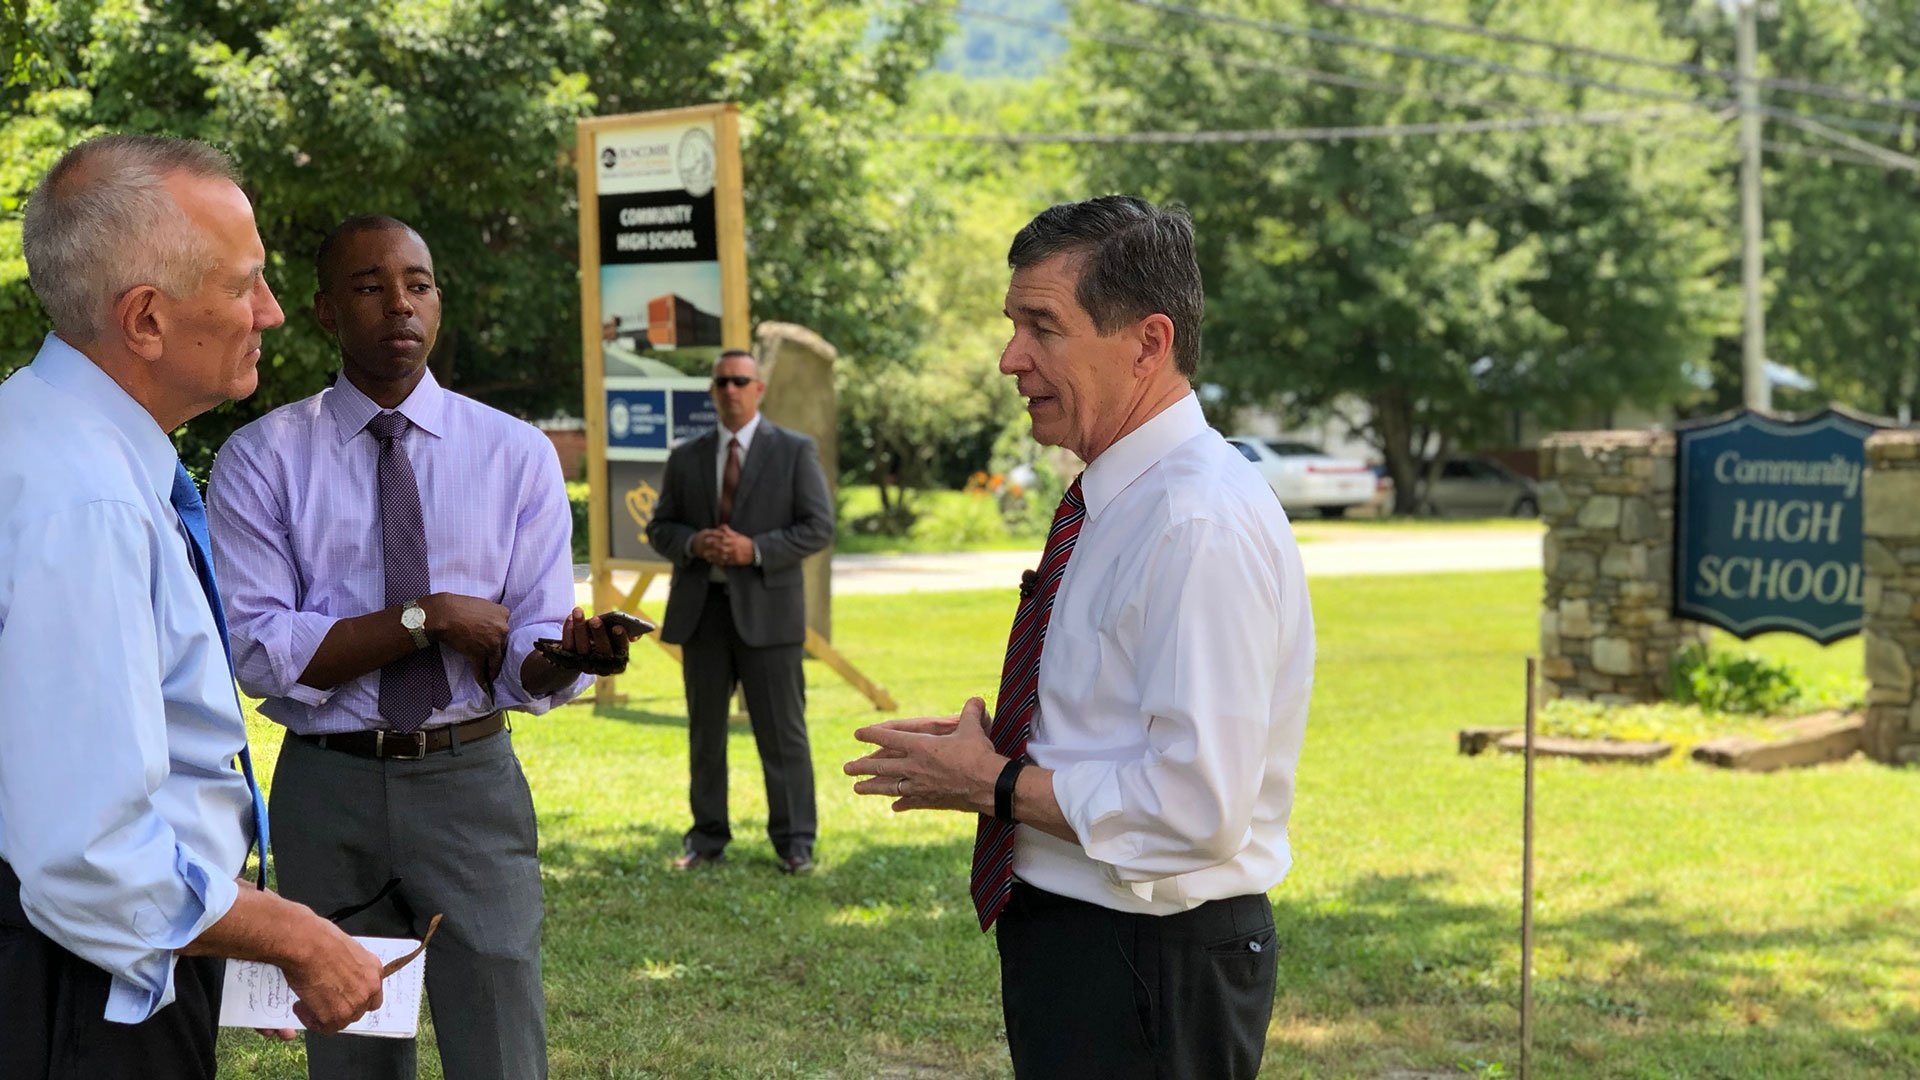 A visit from Governor Roy Cooper at Community High School